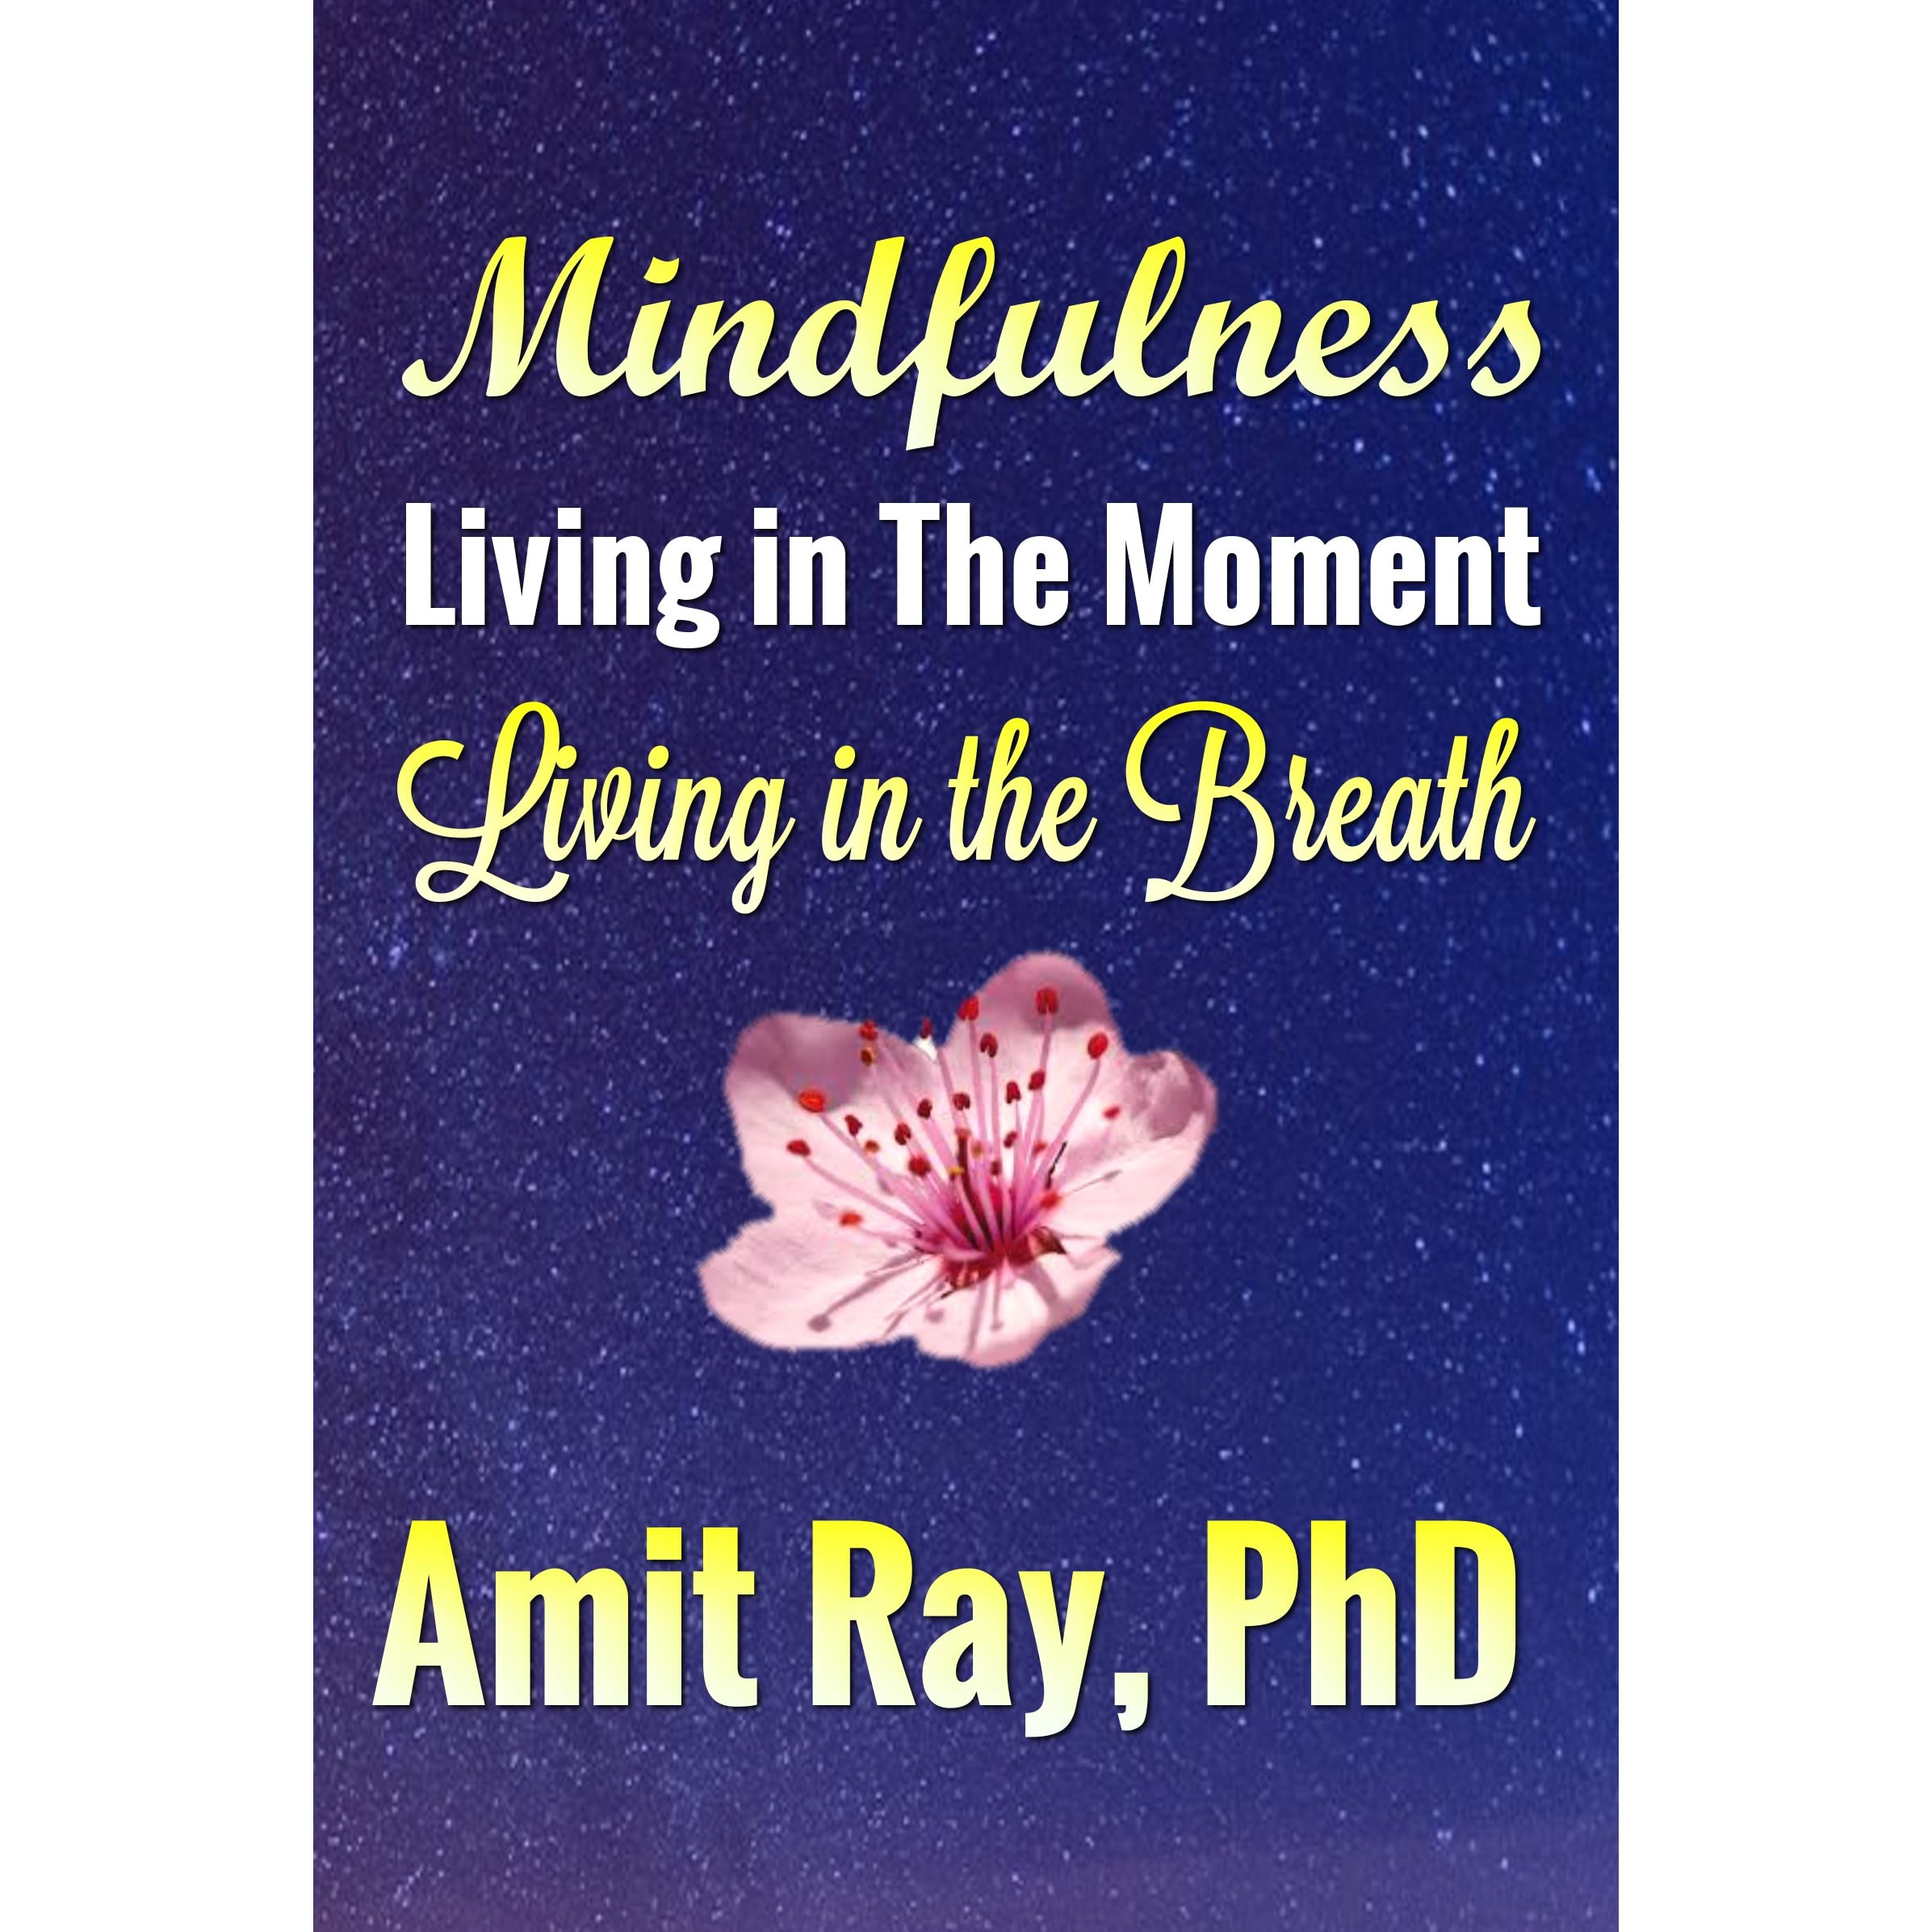 Quotes About Anger And Rage: Mindfulness : Living In The Moment